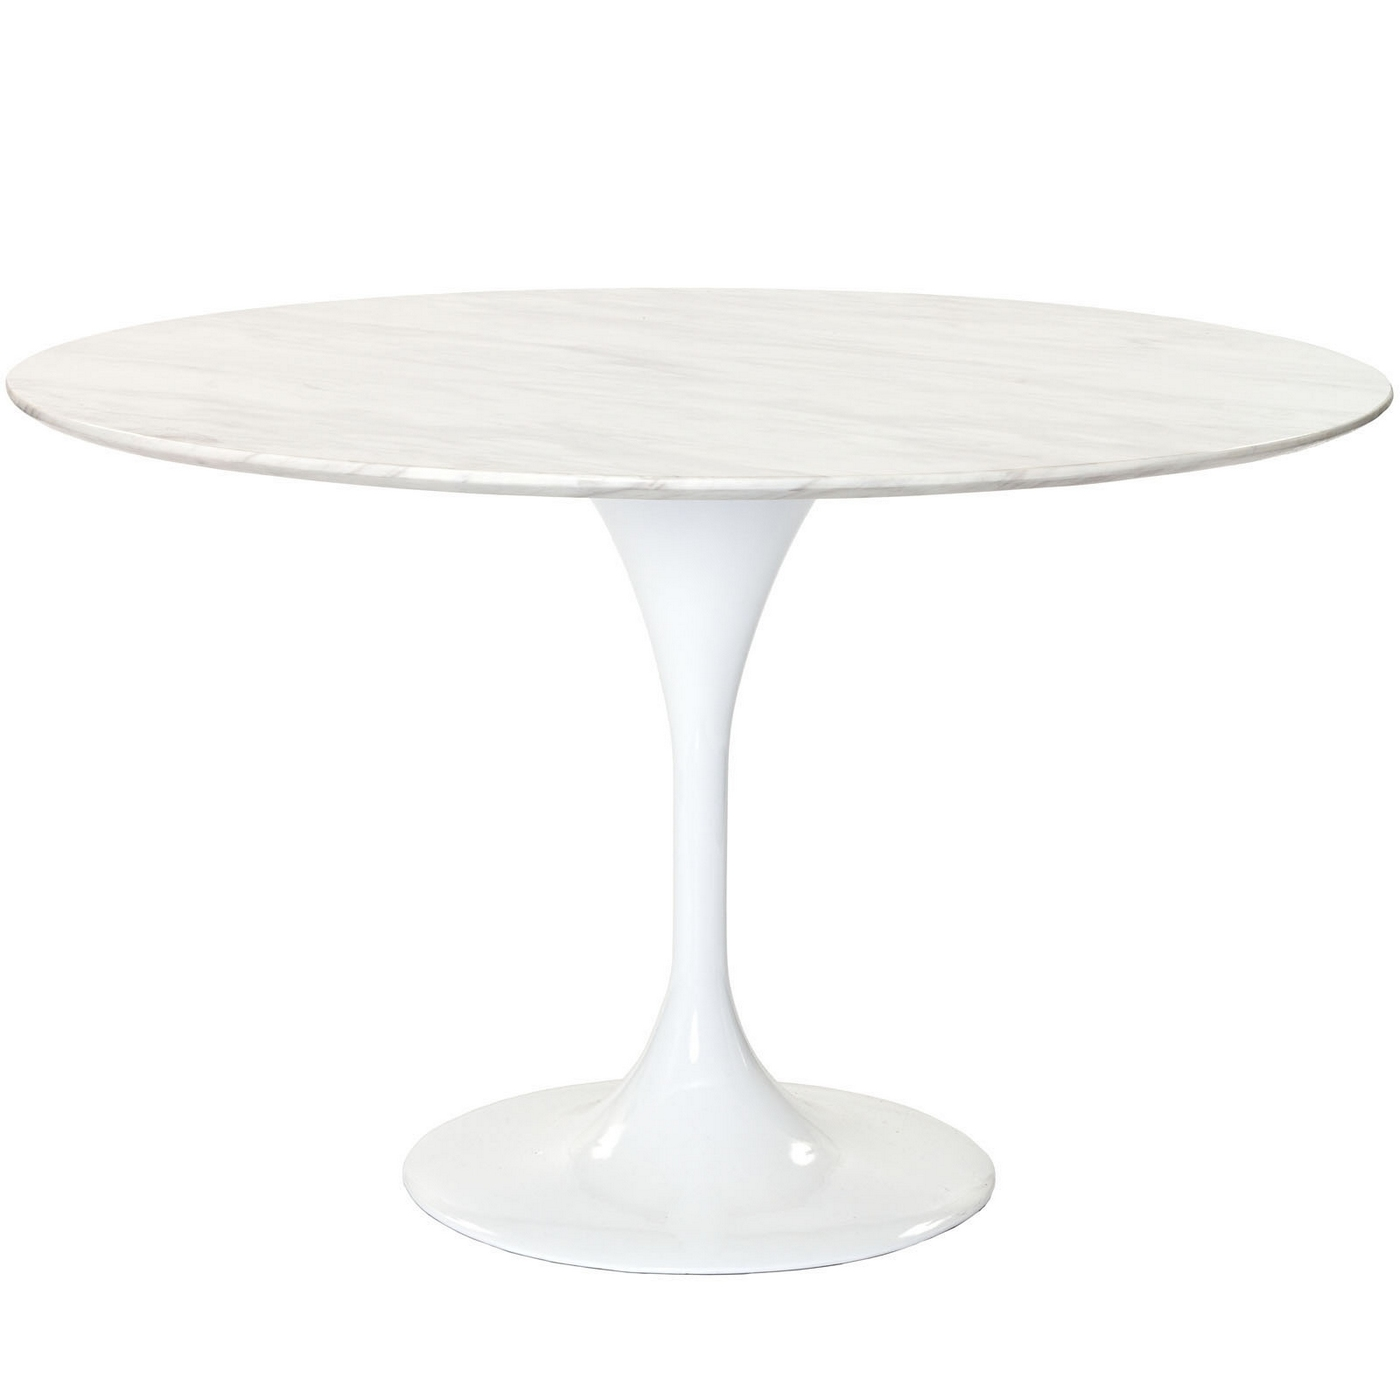 Round Marble Top Dining Table Lippa 48 Quot Round Marble Top Dining Table With Lacquered